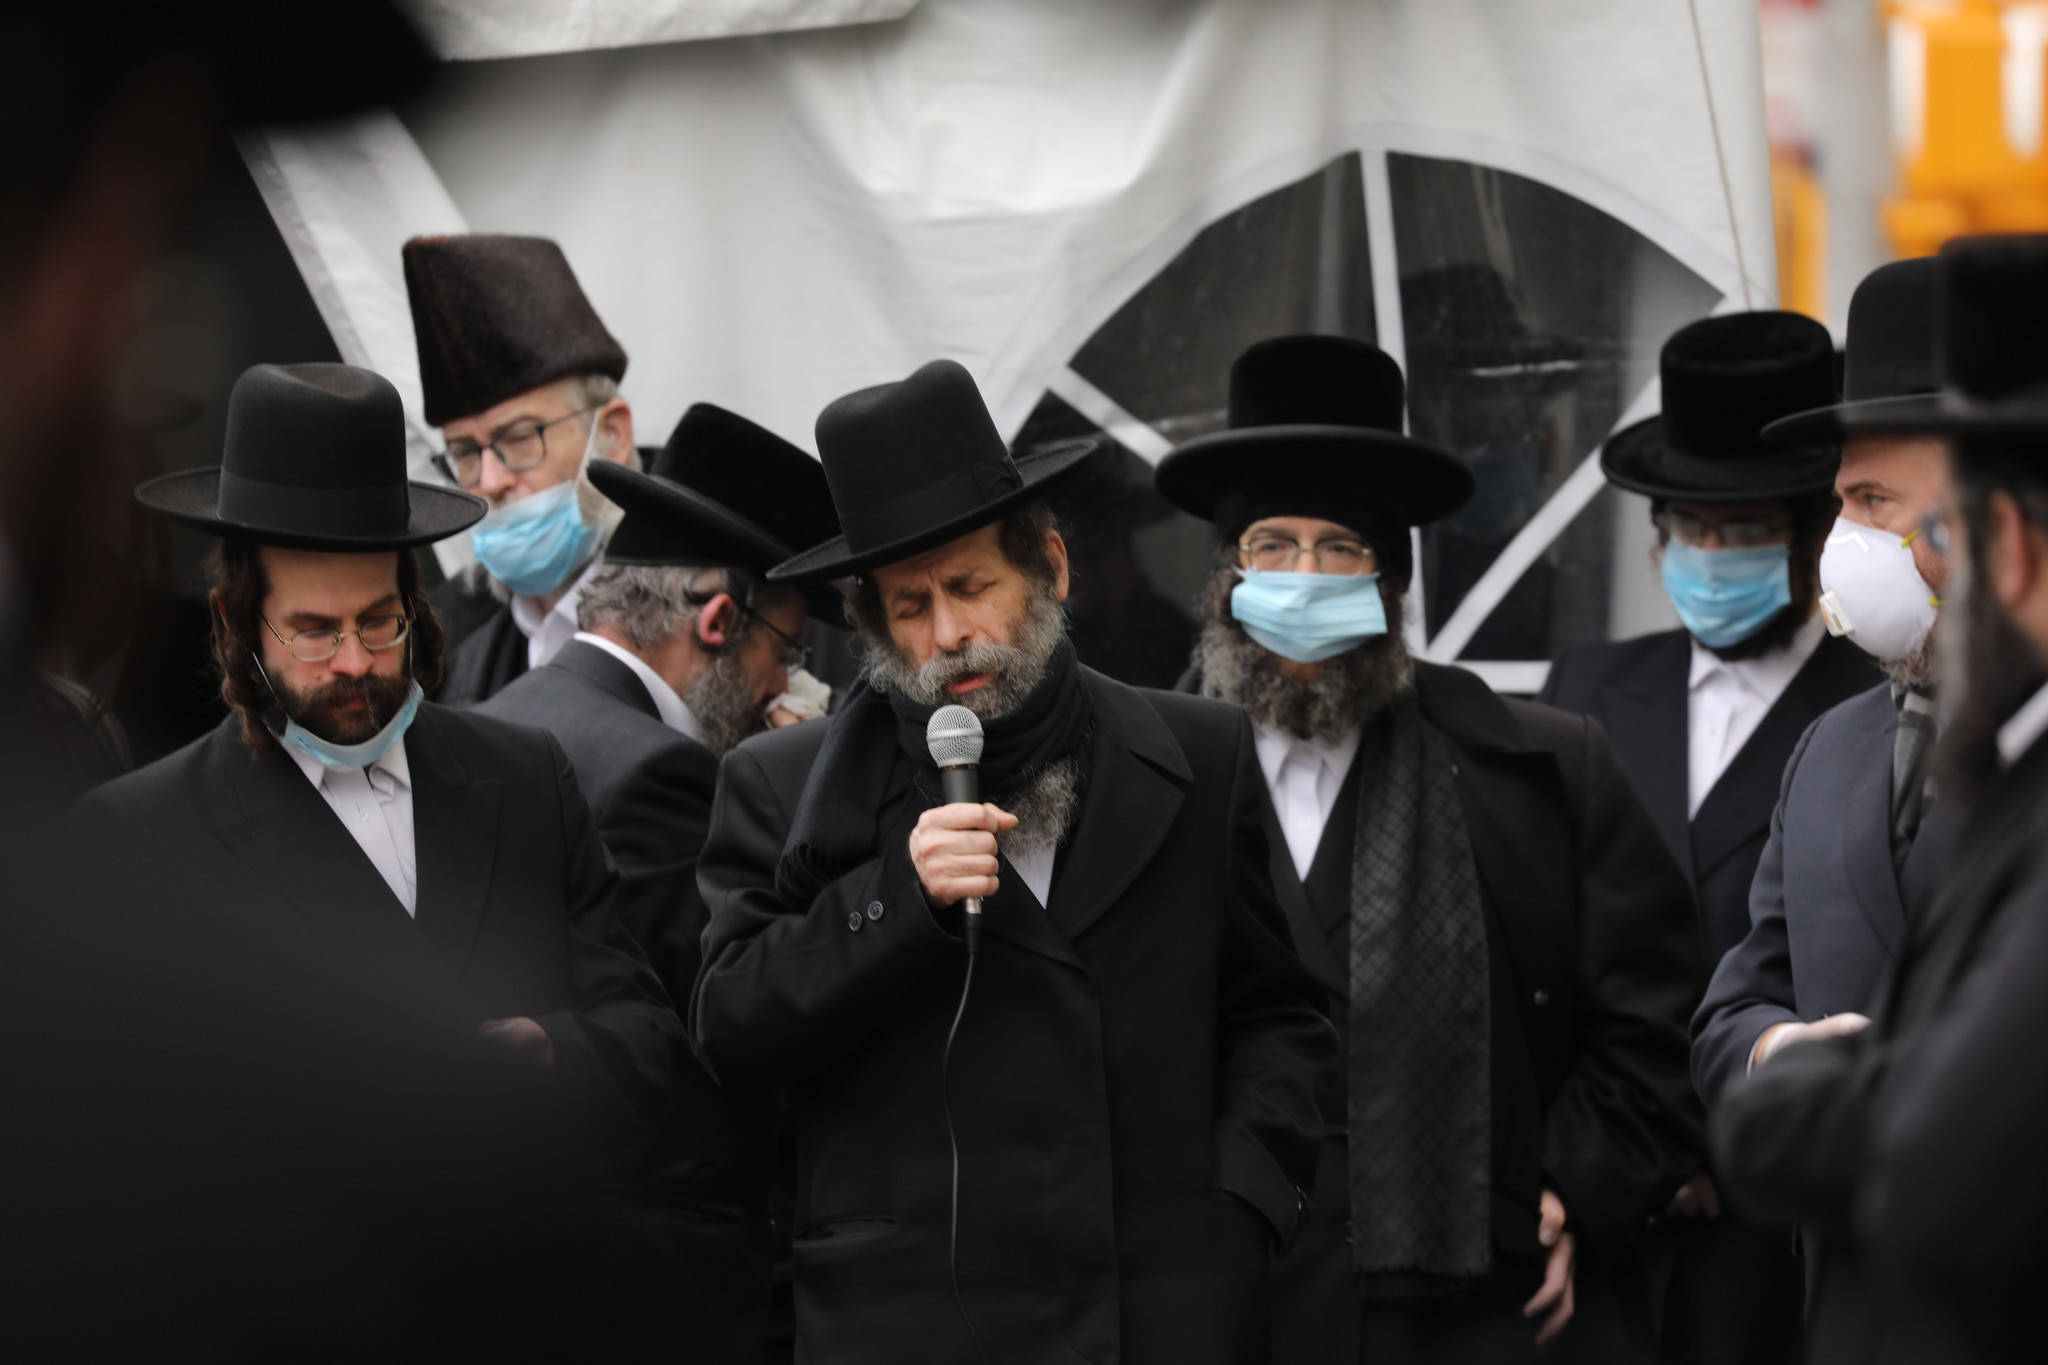 Why are some ultra-Orthodox Jews flouting social distancing rules?